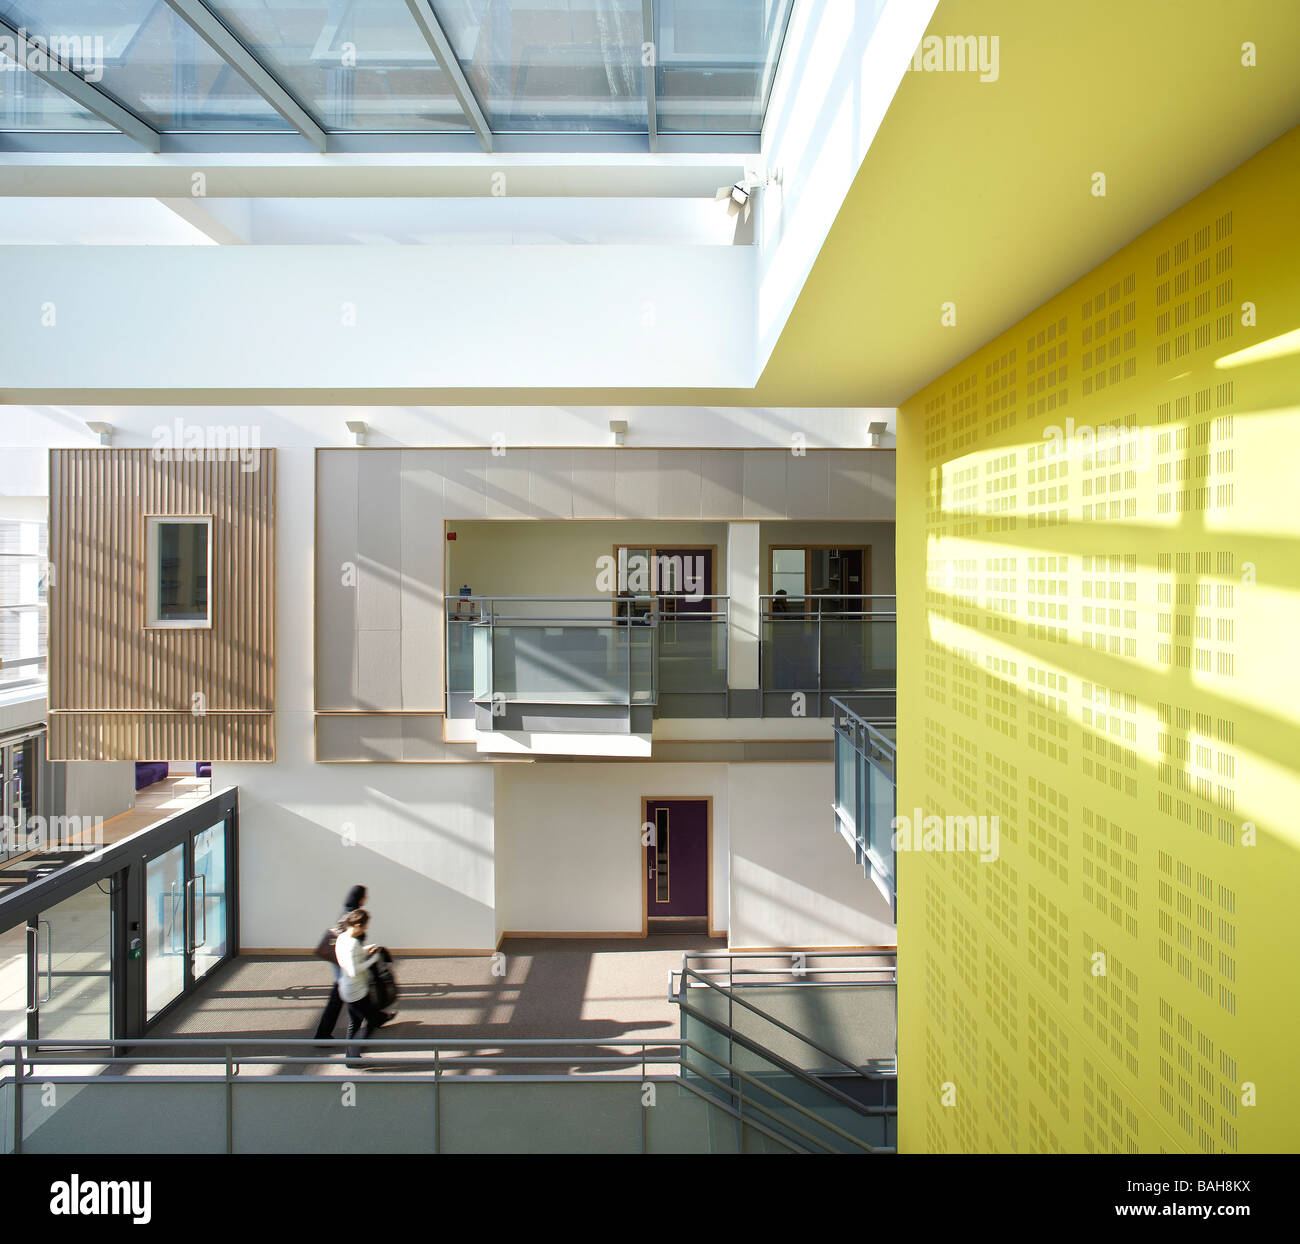 Paddington Academy, London, United Kingdom, Feilden Clegg Bradley Architects, Paddington academy. - Stock Image